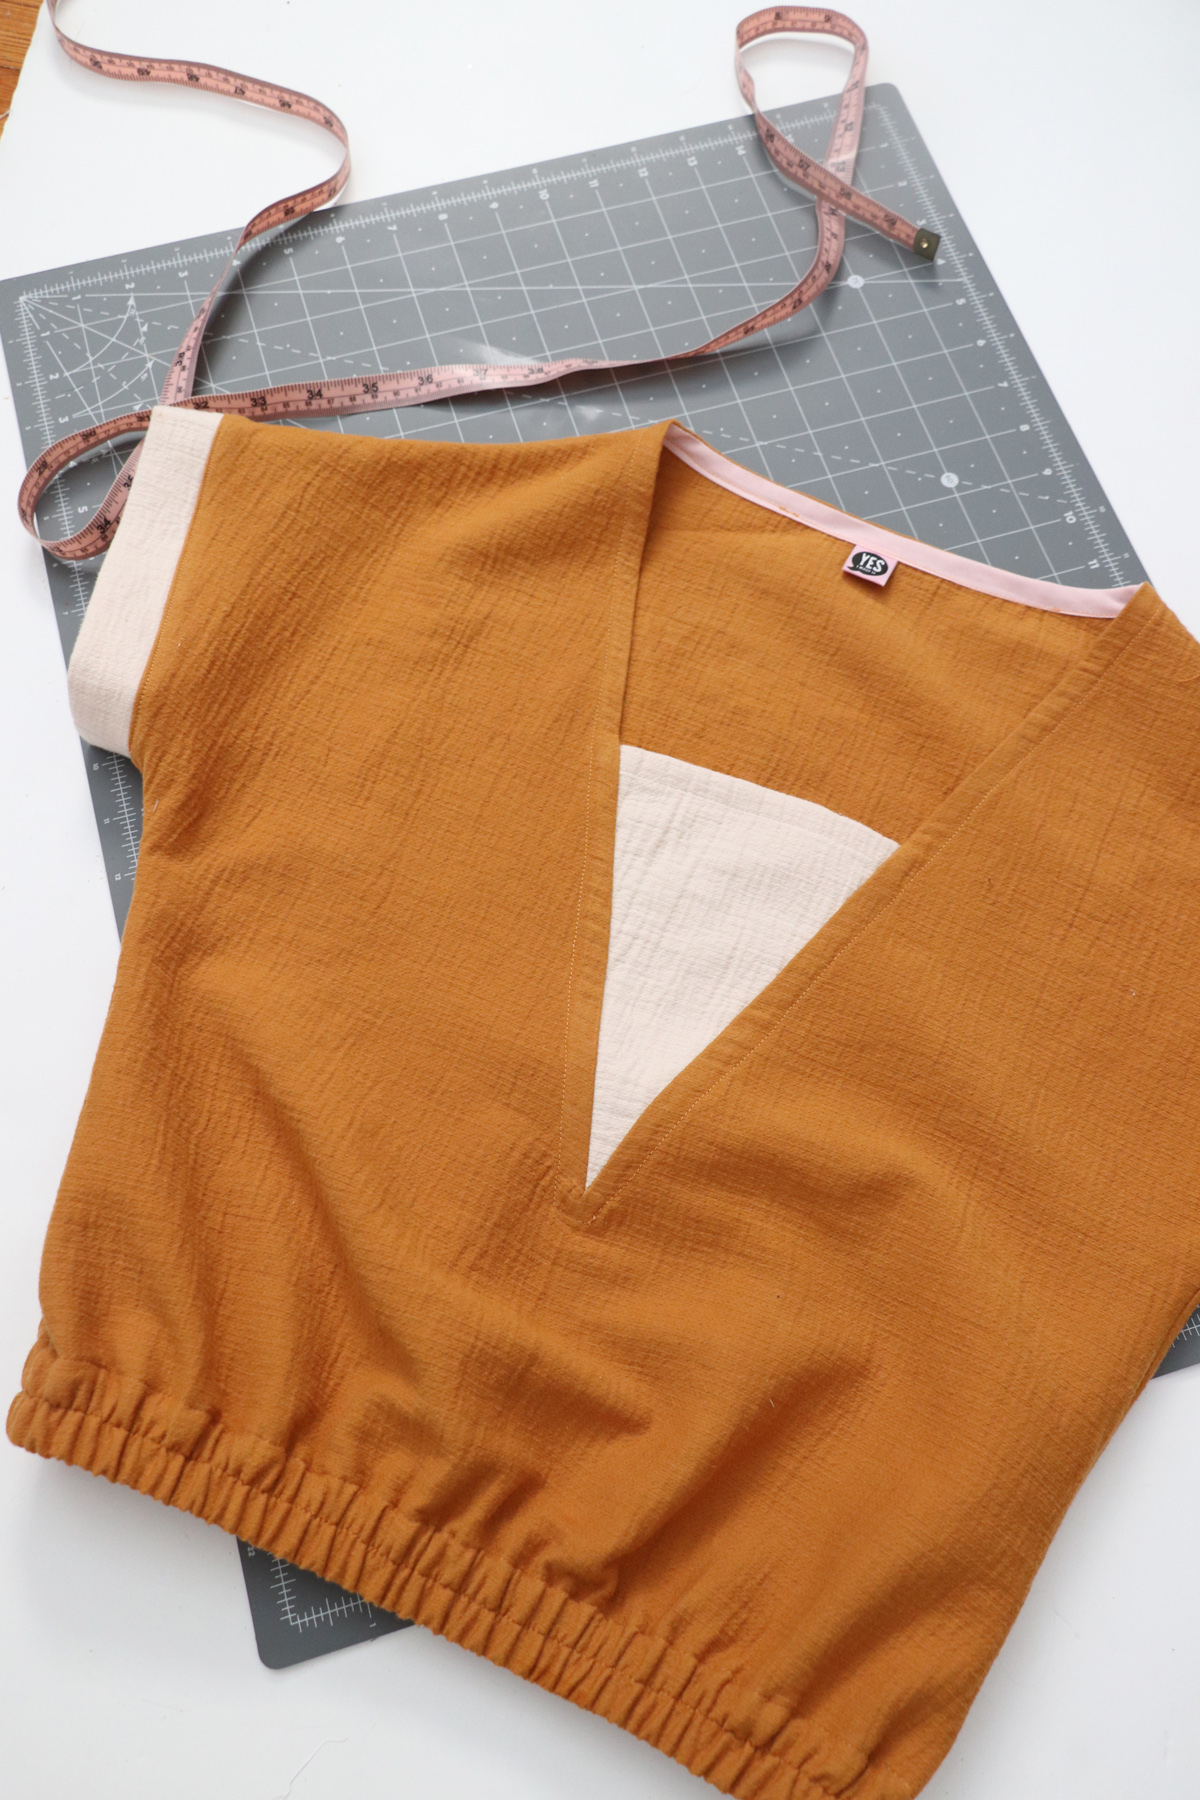 How to make an elastic waist cropped top with the Olive top by Megan Nielsen Patterns